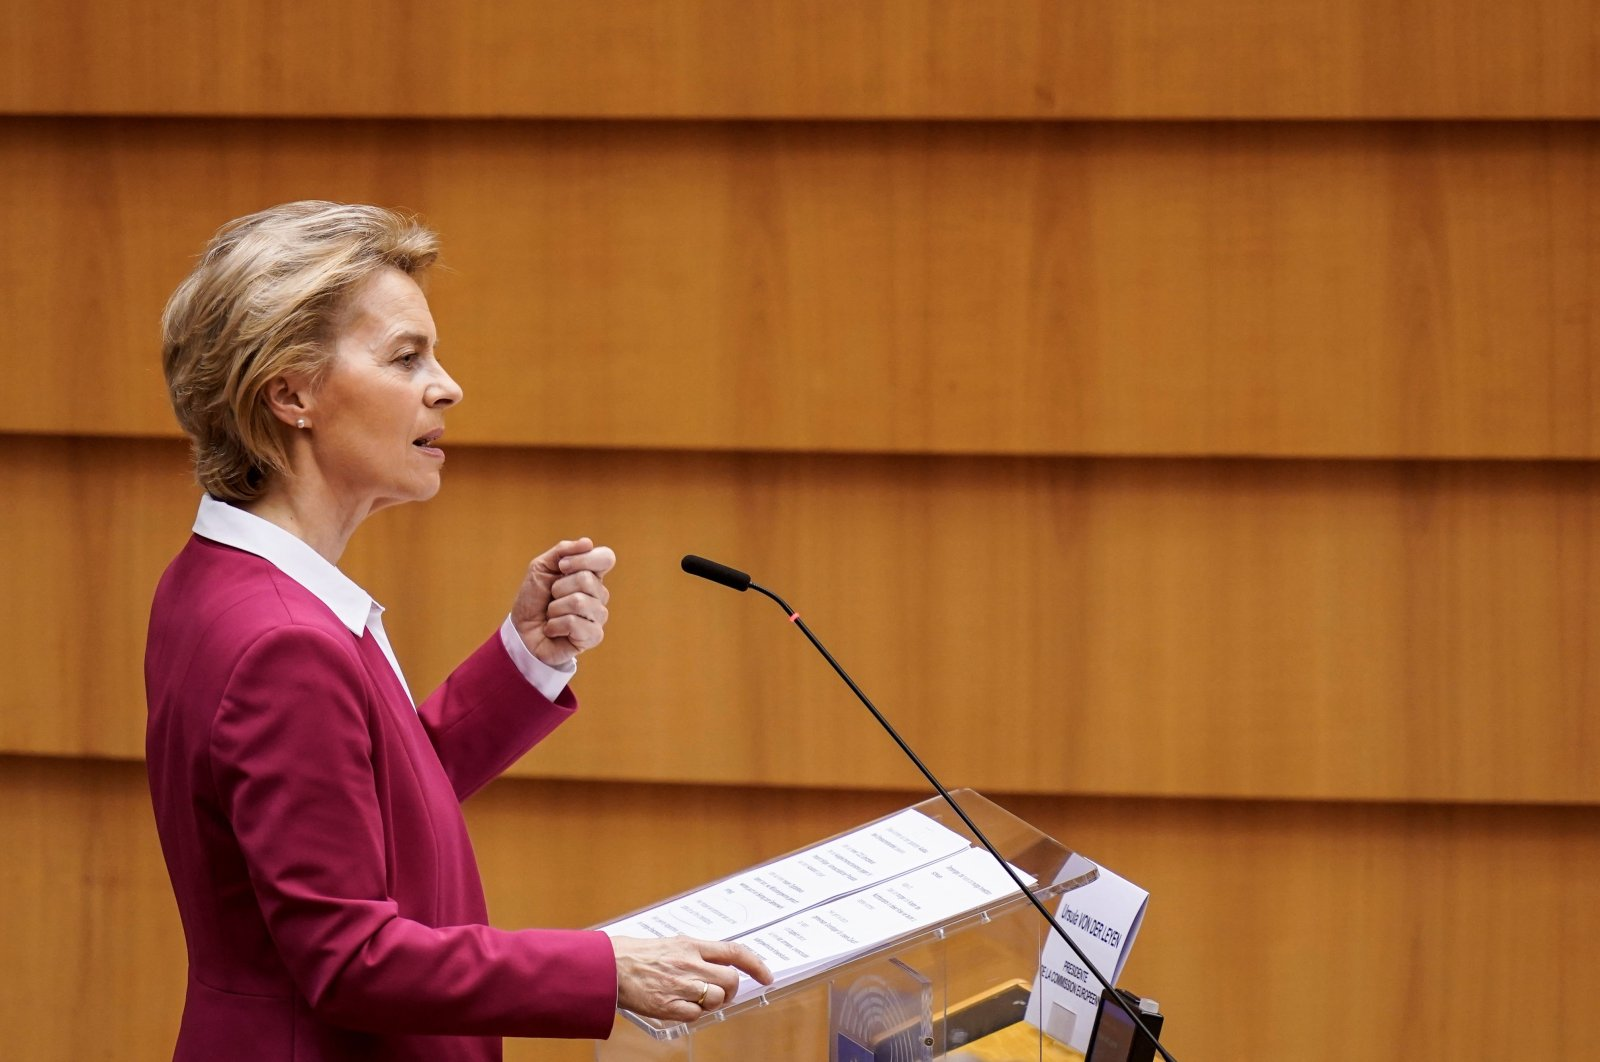 European Commission President Ursula von der Leyen speaks during a plenary session of the European Parliament, Brussels, May 27, 2020. (AFP Photo)